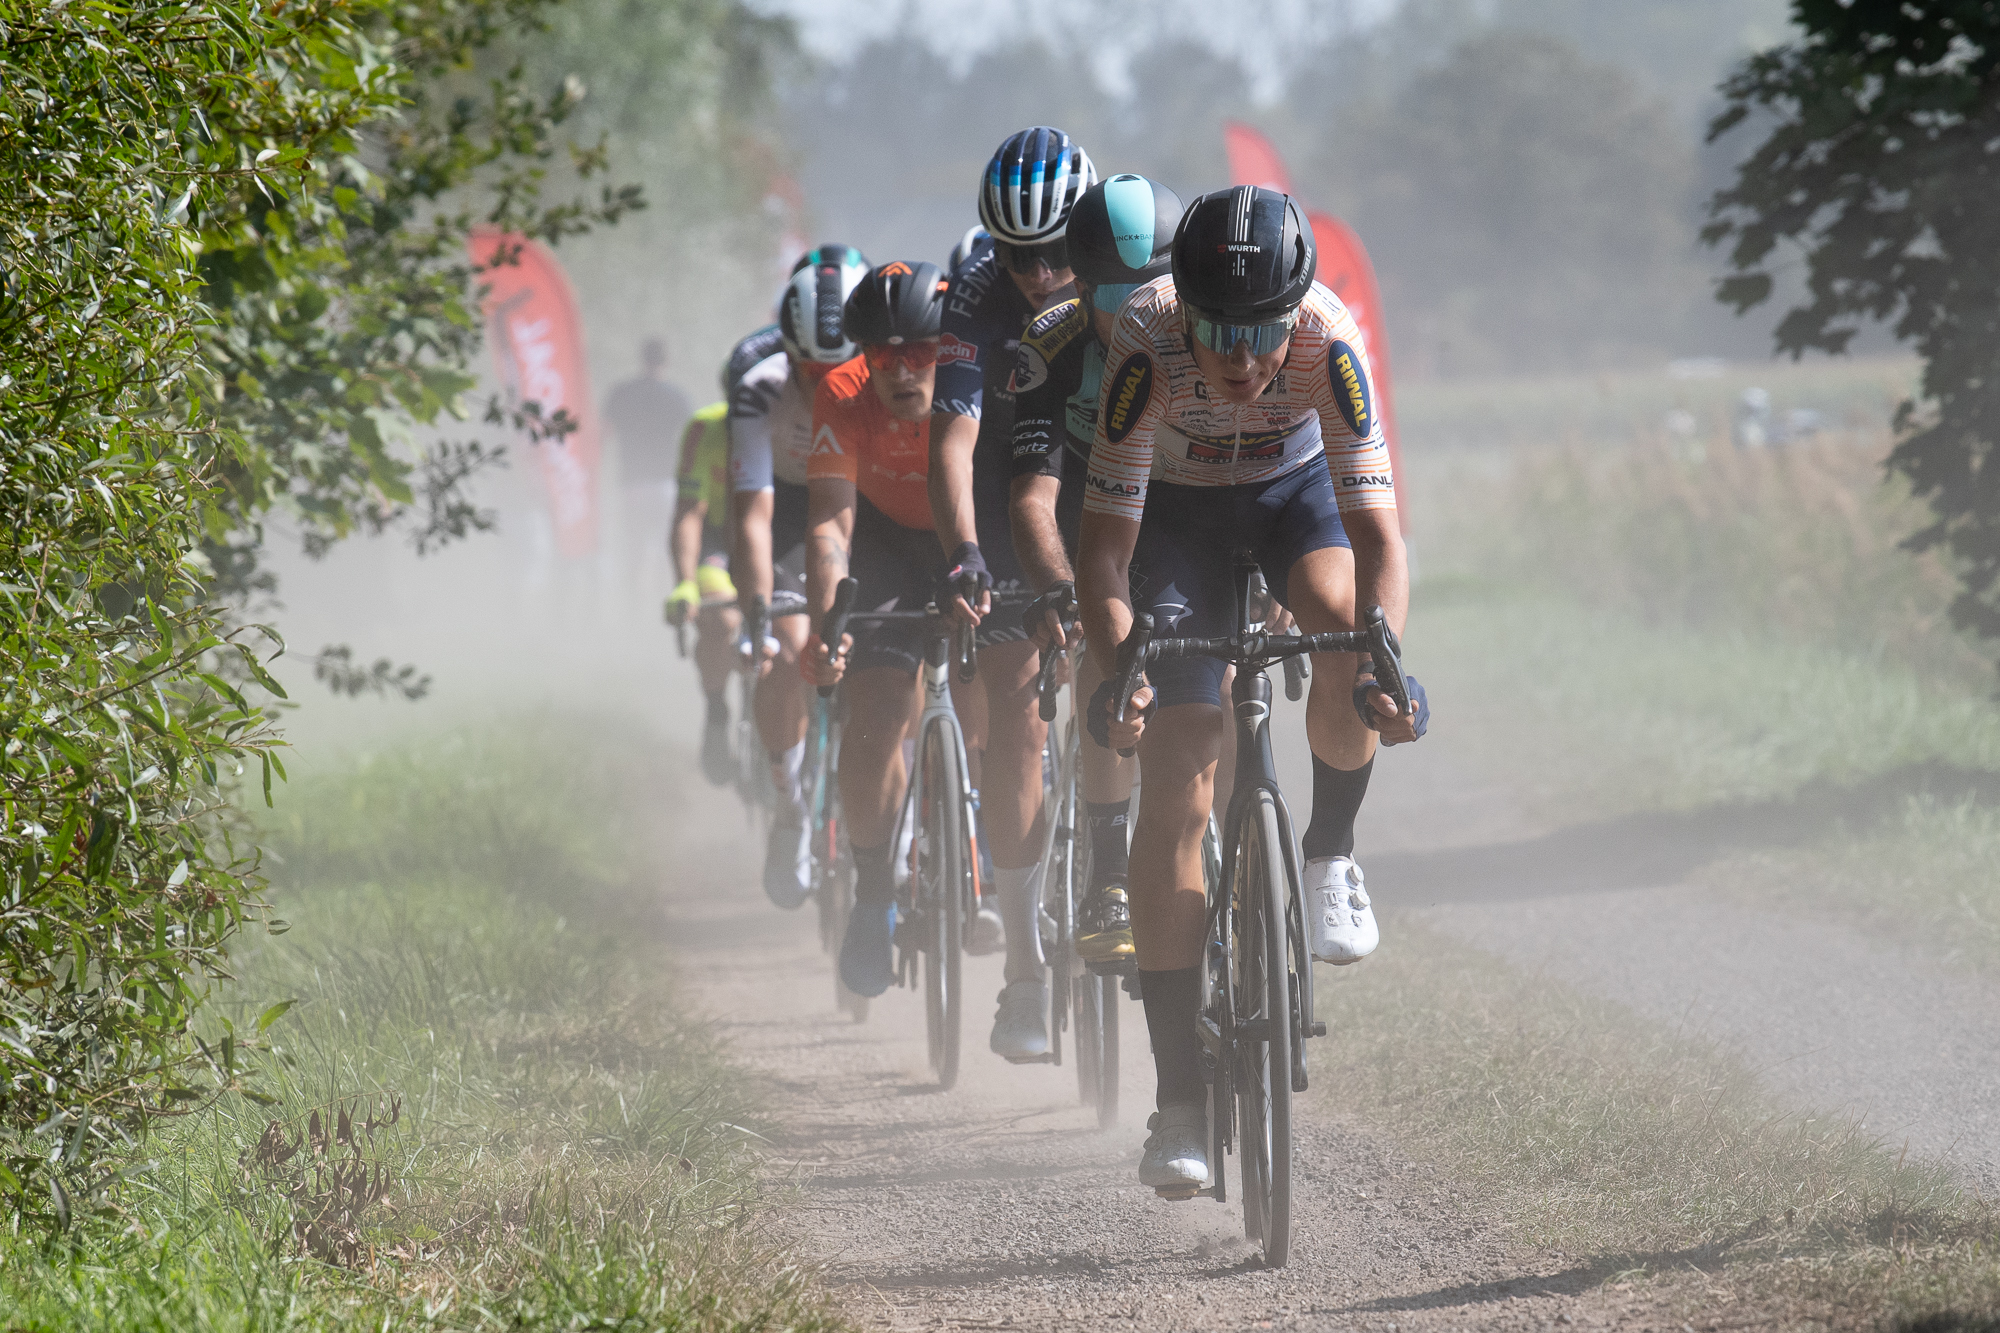 Tobias Kongstad leads the early breakaway at the Antwerp Port Epic